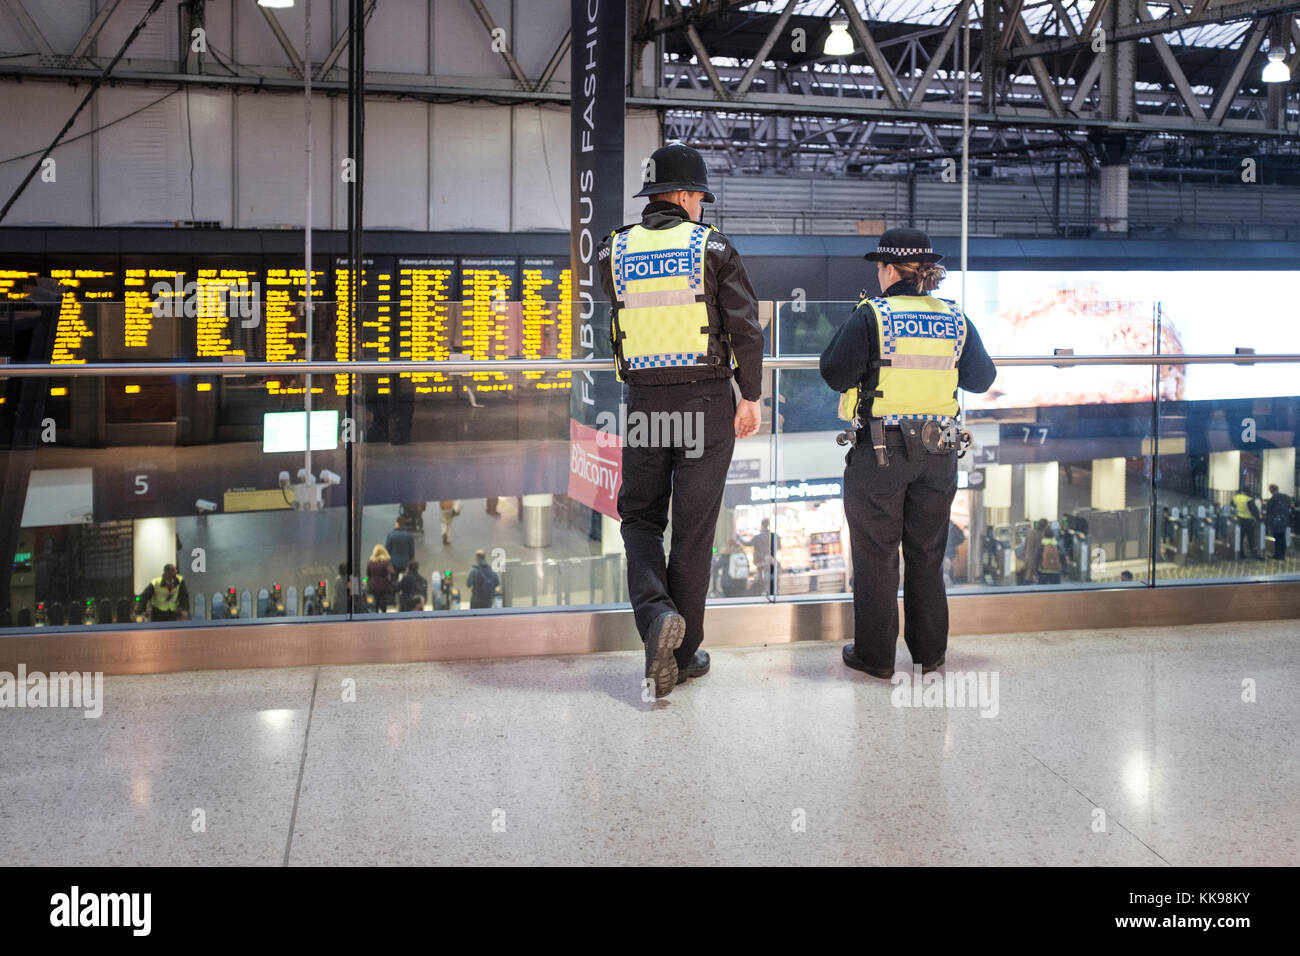 British Transport police officers on the beat,Waterloo Station,London Stock Photo